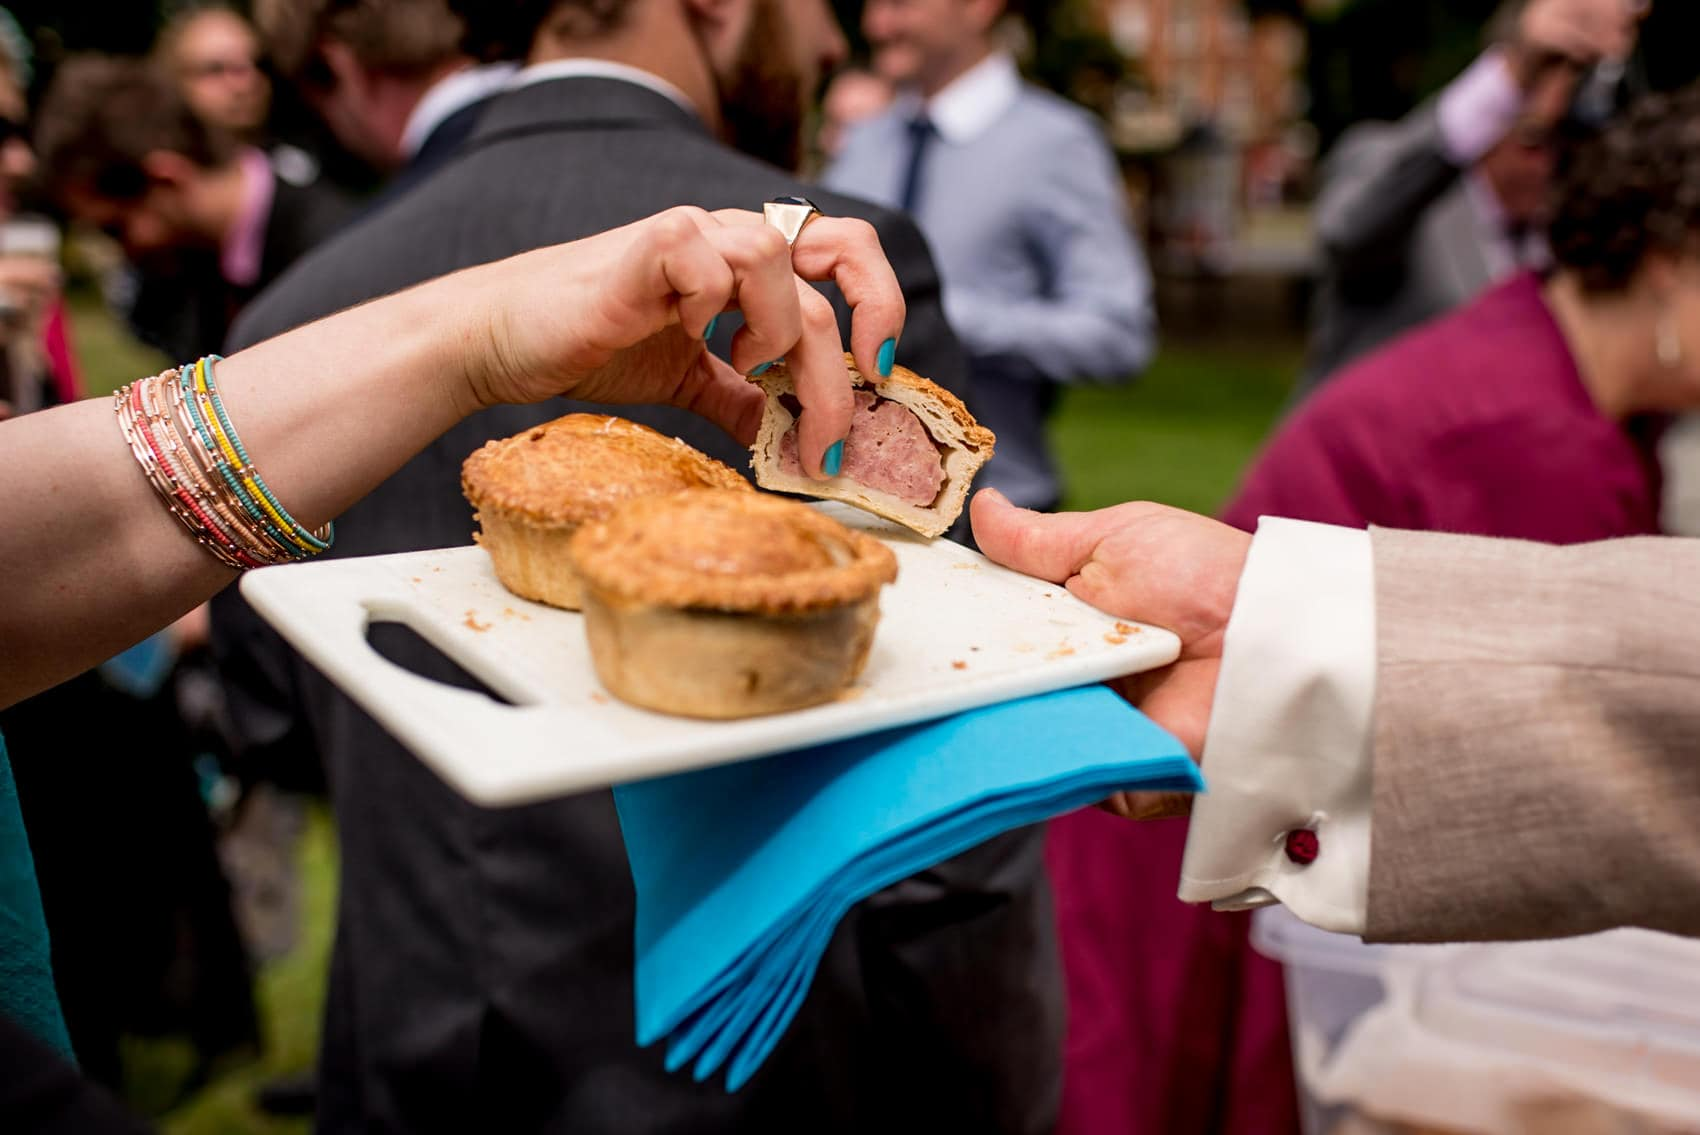 pork pies at this picnic wedding